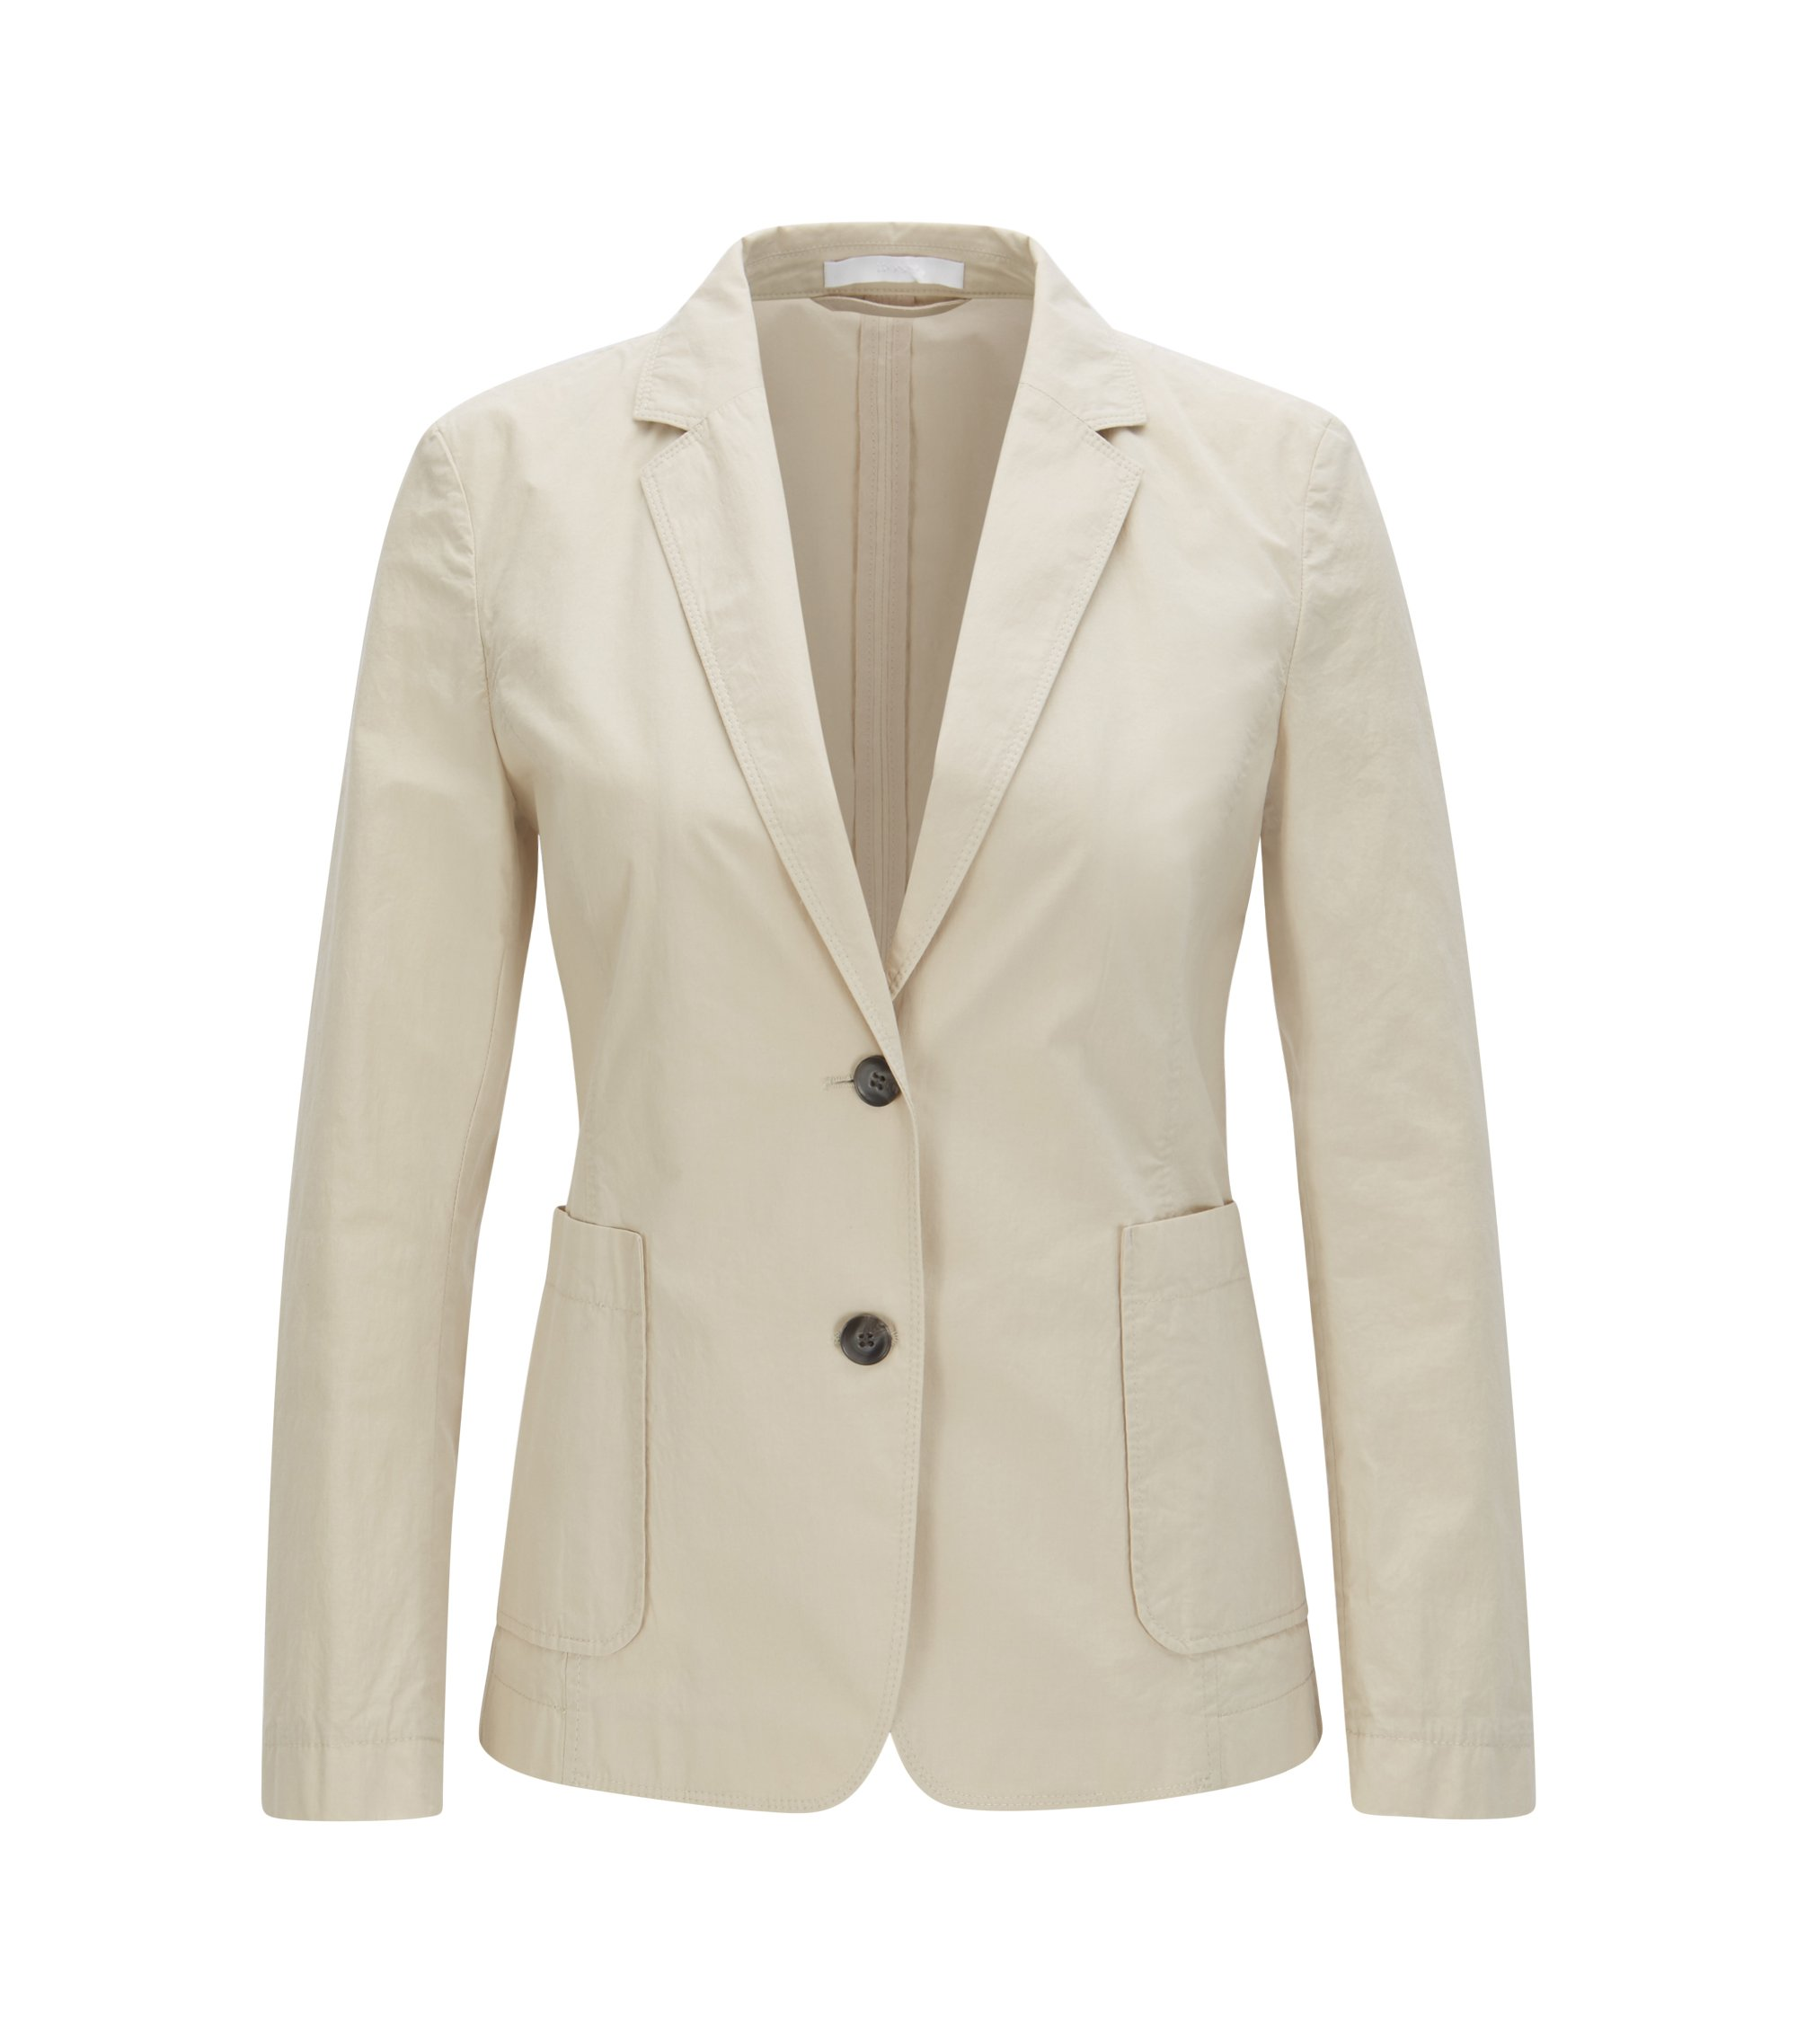 Veste Regular Fit en coton mélangé, Beige clair